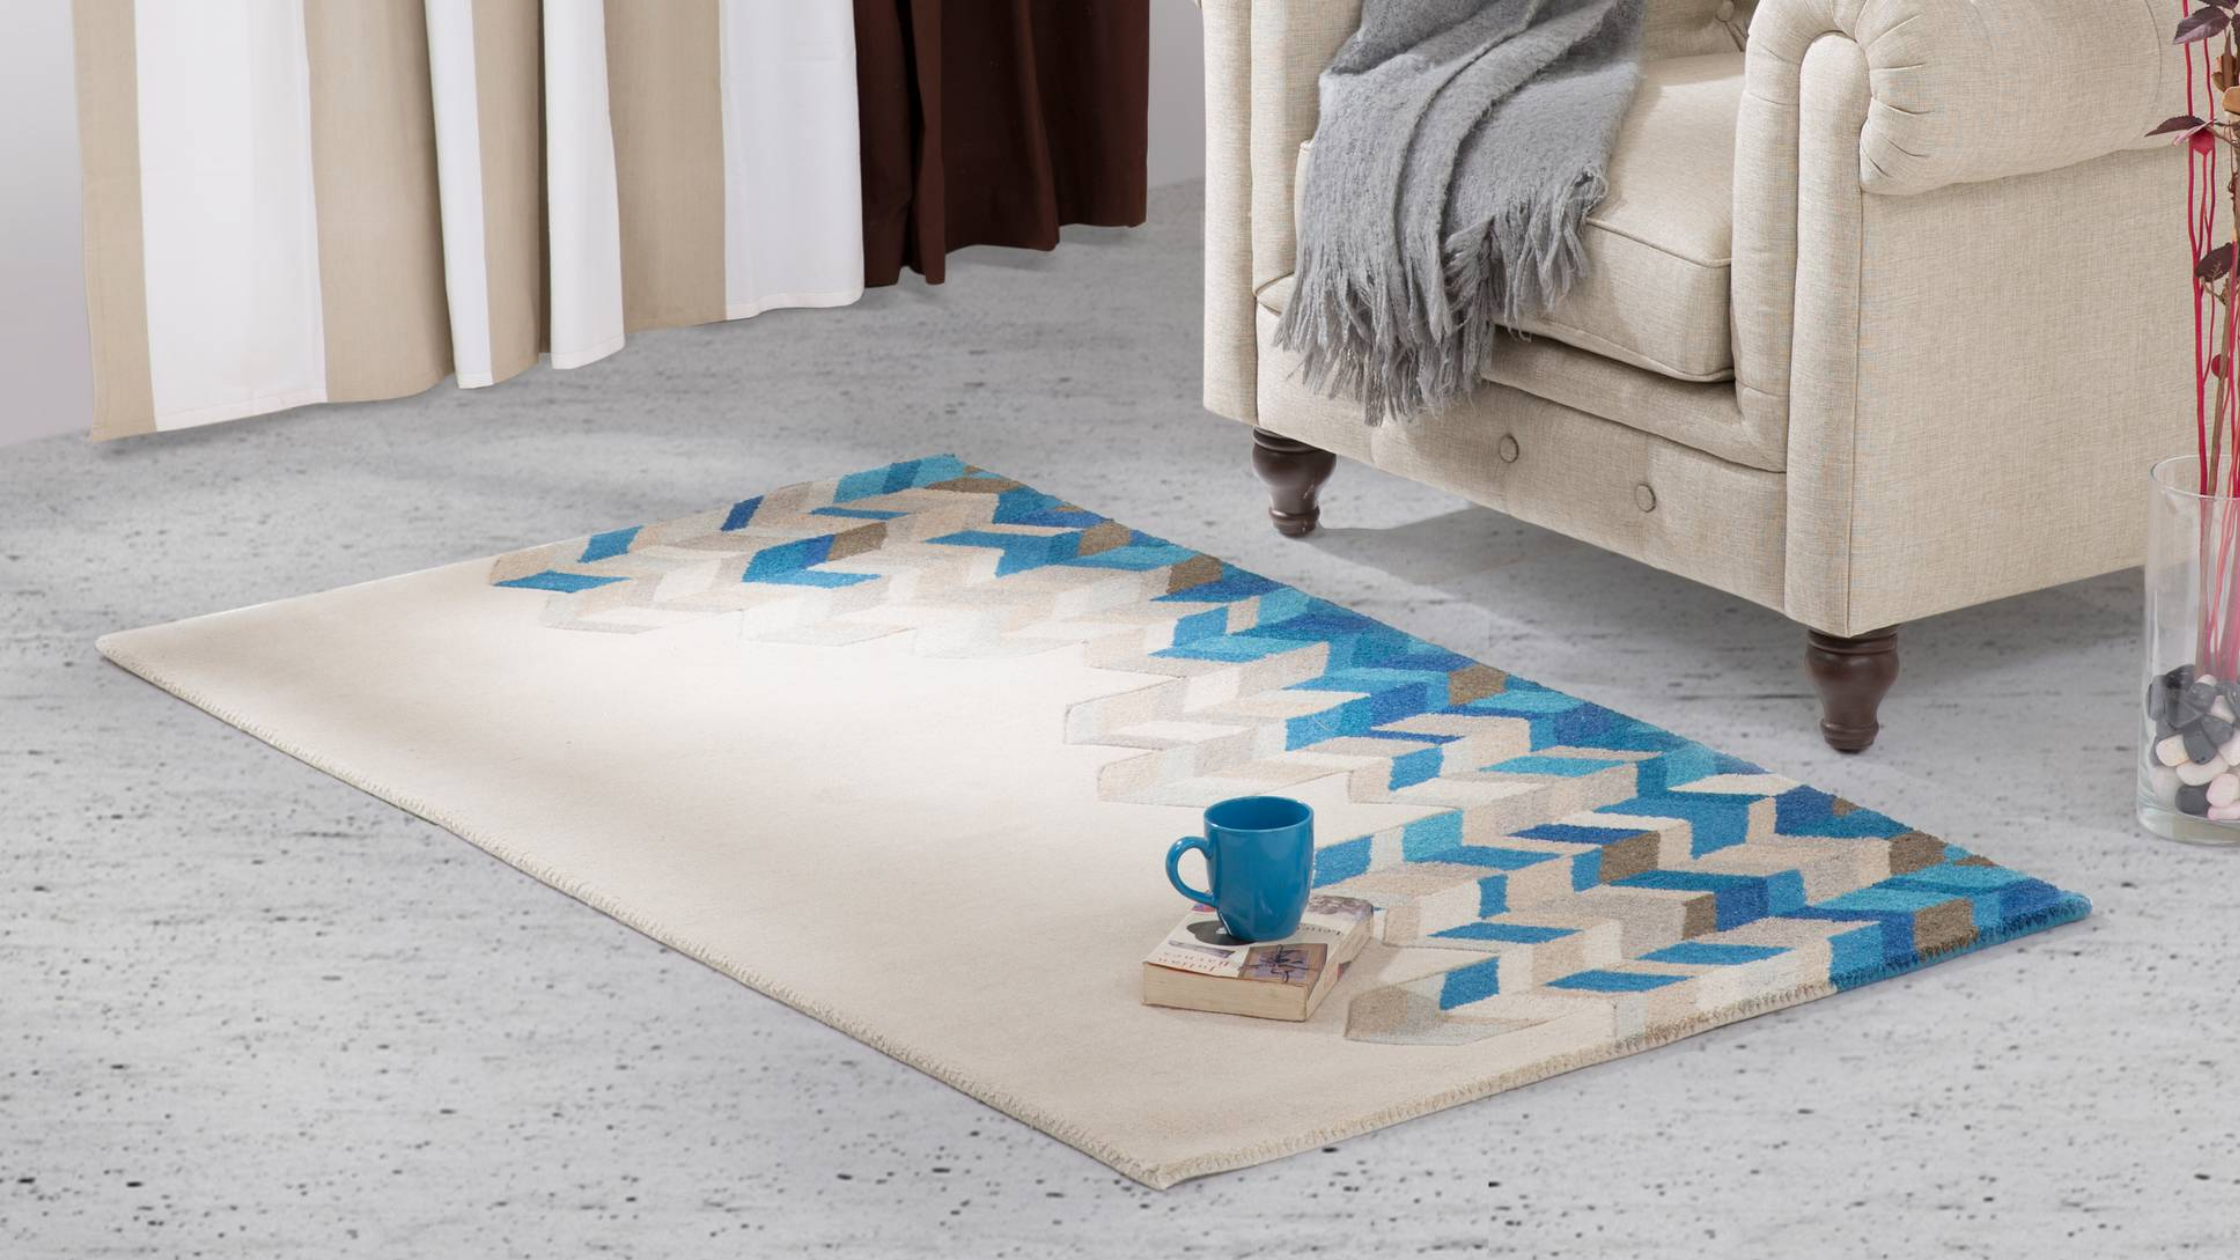 Top Myths About Professional Carpet Cleaning Services